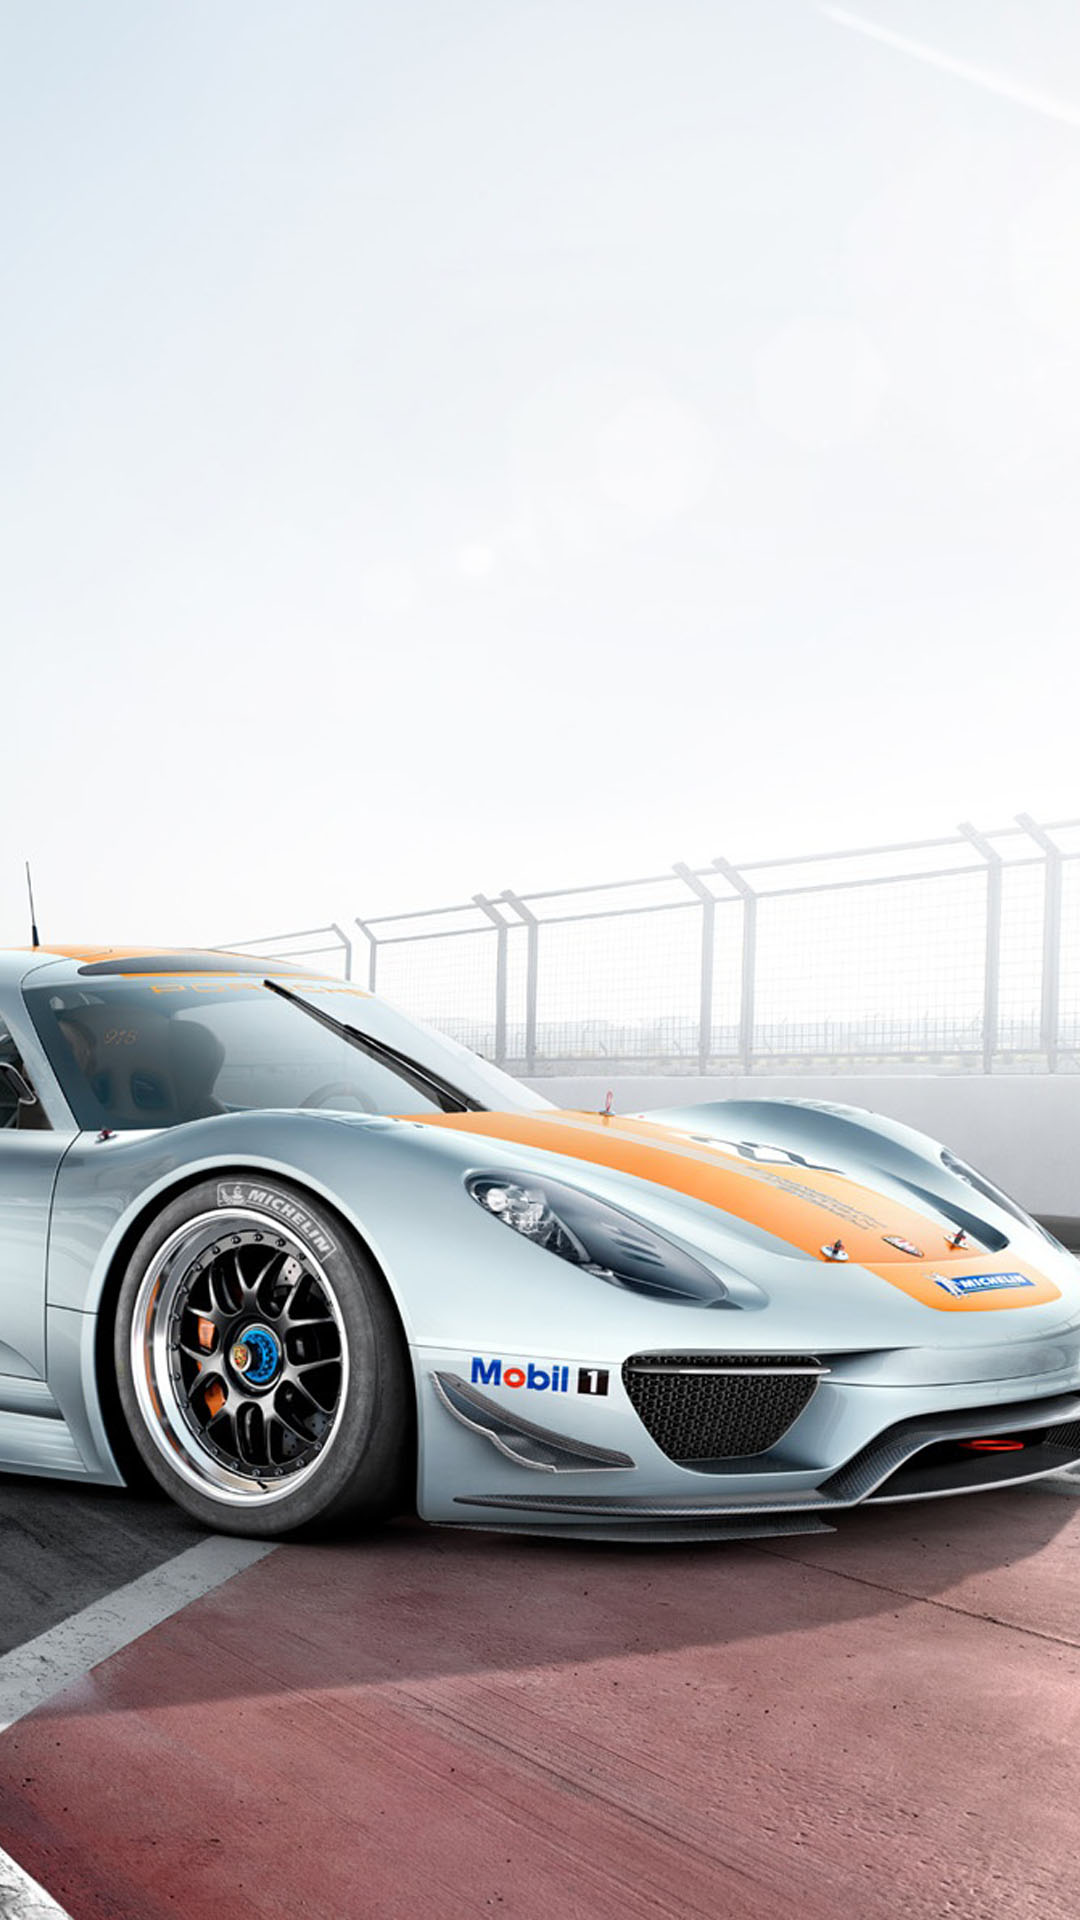 Race Car Wallpaper For Iphone Porsche 918 Rsr Front Best Htc One Wallpapers Free And